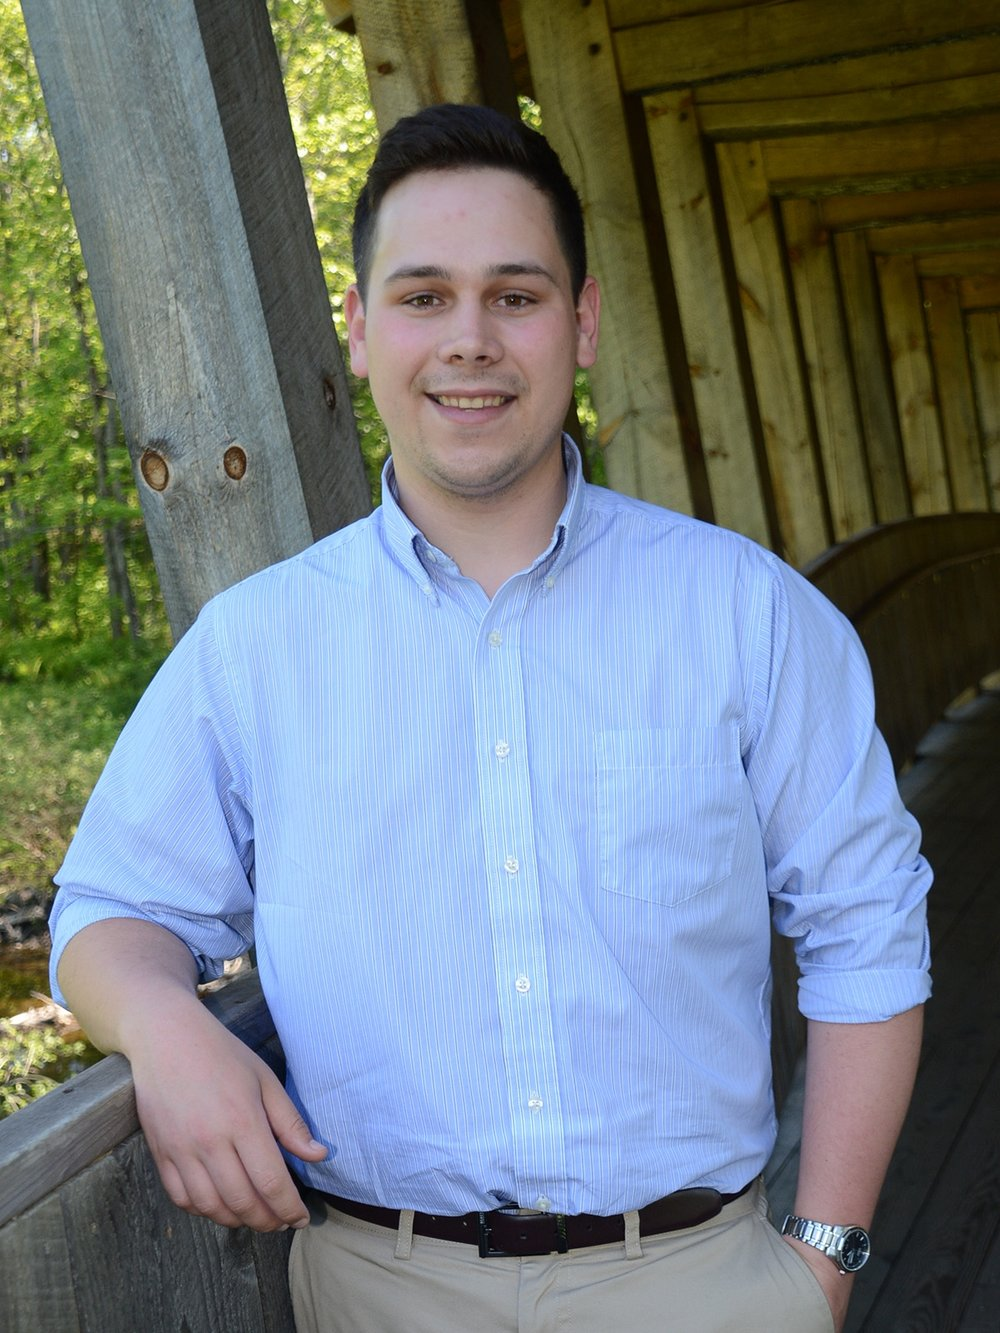 Ben Chaine - Real Estate & Insurance Agent - Ben is a great addition to our local team, born and raised in Bridgton! Acquiring his real estate license in 2017, he will use his local knowledge to help you with all of your real estate needs. He is a young ambitious realtor who feels he can connect well with the younger generation buying their first homes and connect with sellers marketing to this demographic. Ben studied business at Thomas College in Waterville, Maine and looks forward to helping you find your new home!Ben also has his insurance license and would be happy to help you with your insurance needs!Email: Ben@ObergAgency.comCell: 207-256-0671Office: 207-647-5551